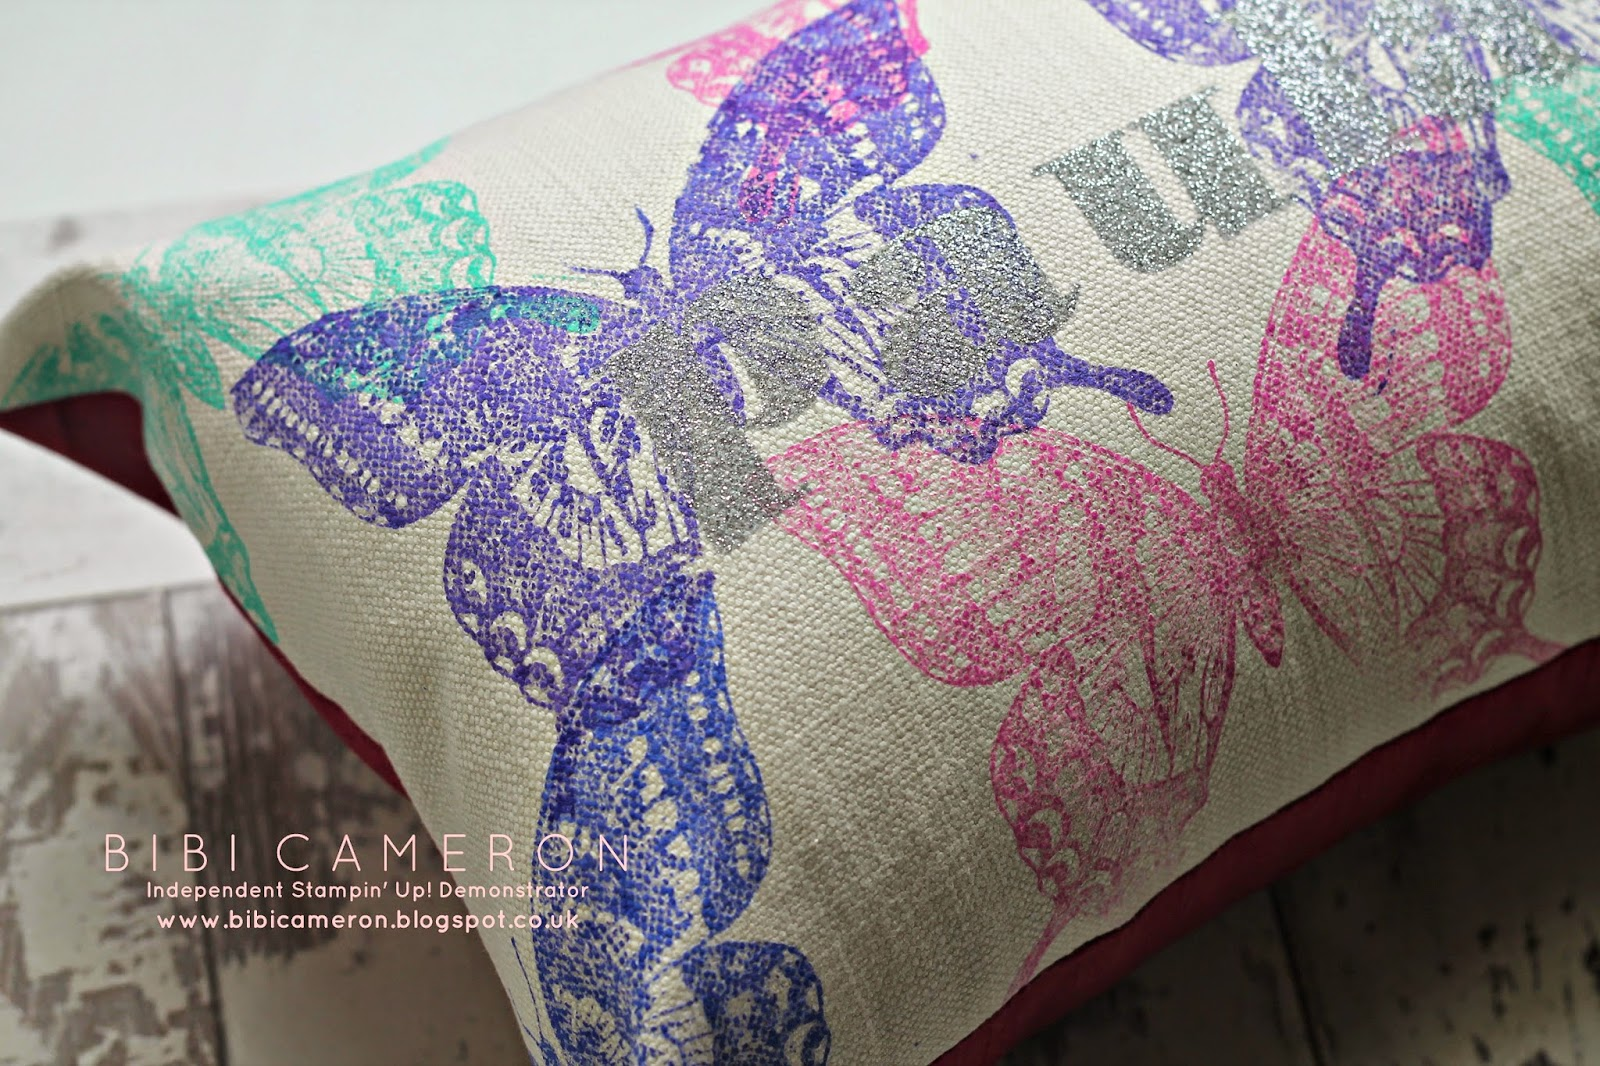 Stamping On Fabric Tutorial And Faq How To Bibi Cameron